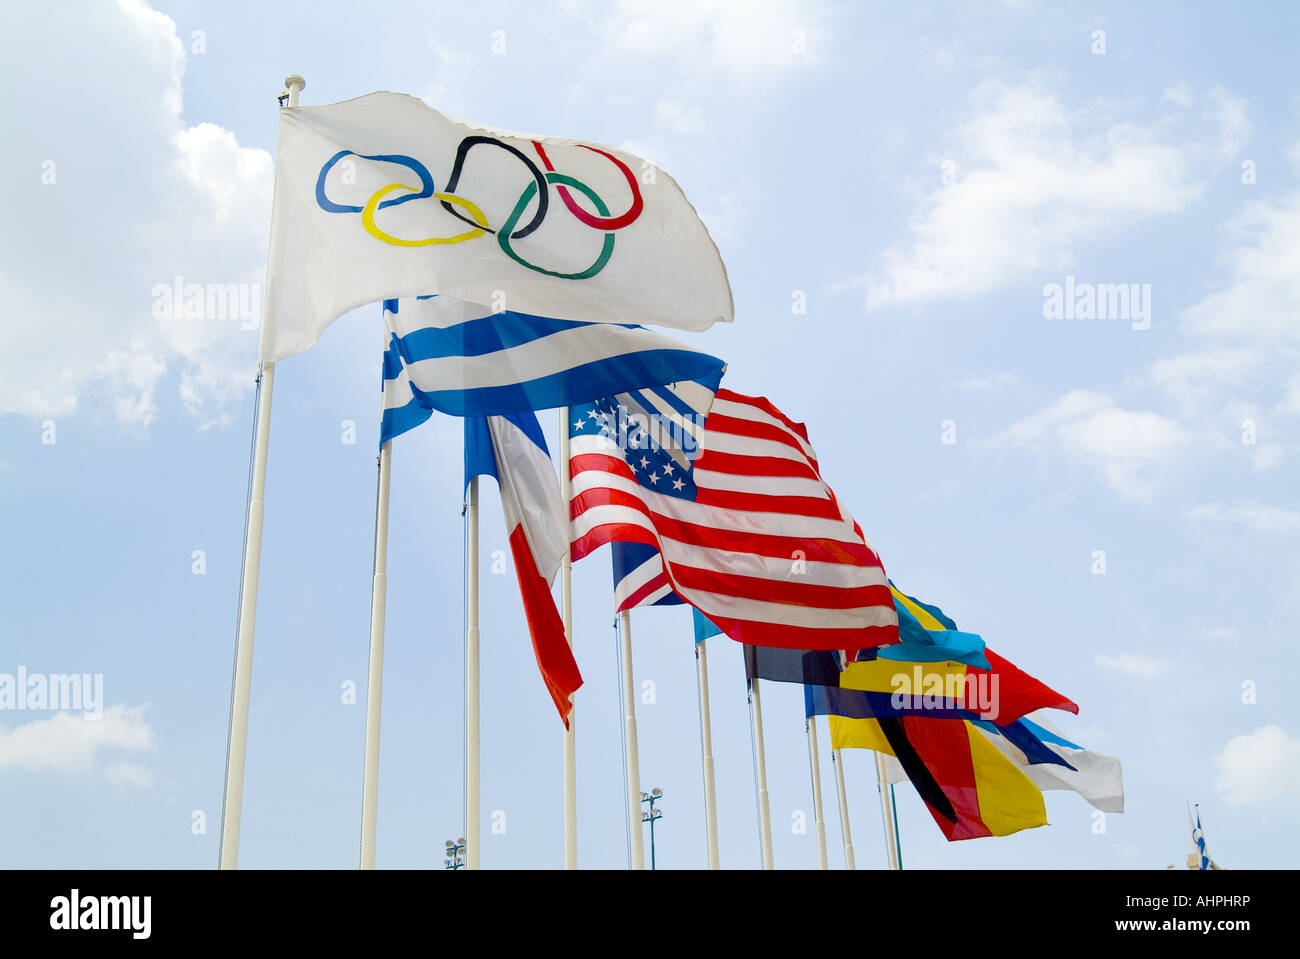 Olympic flags, Athens - Stock Image